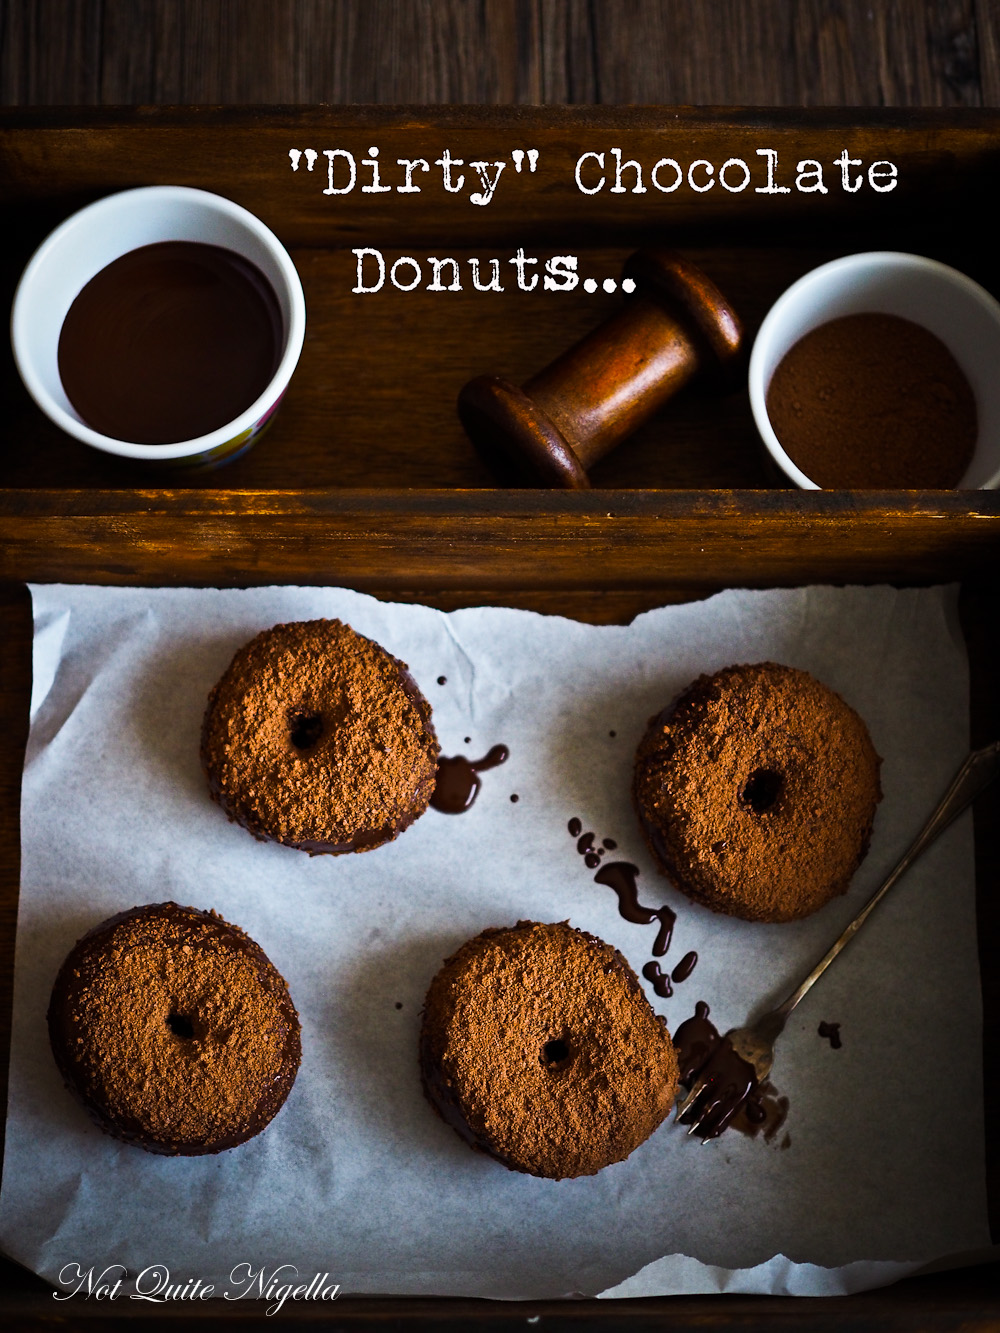 Dirty Chocolate Donuts